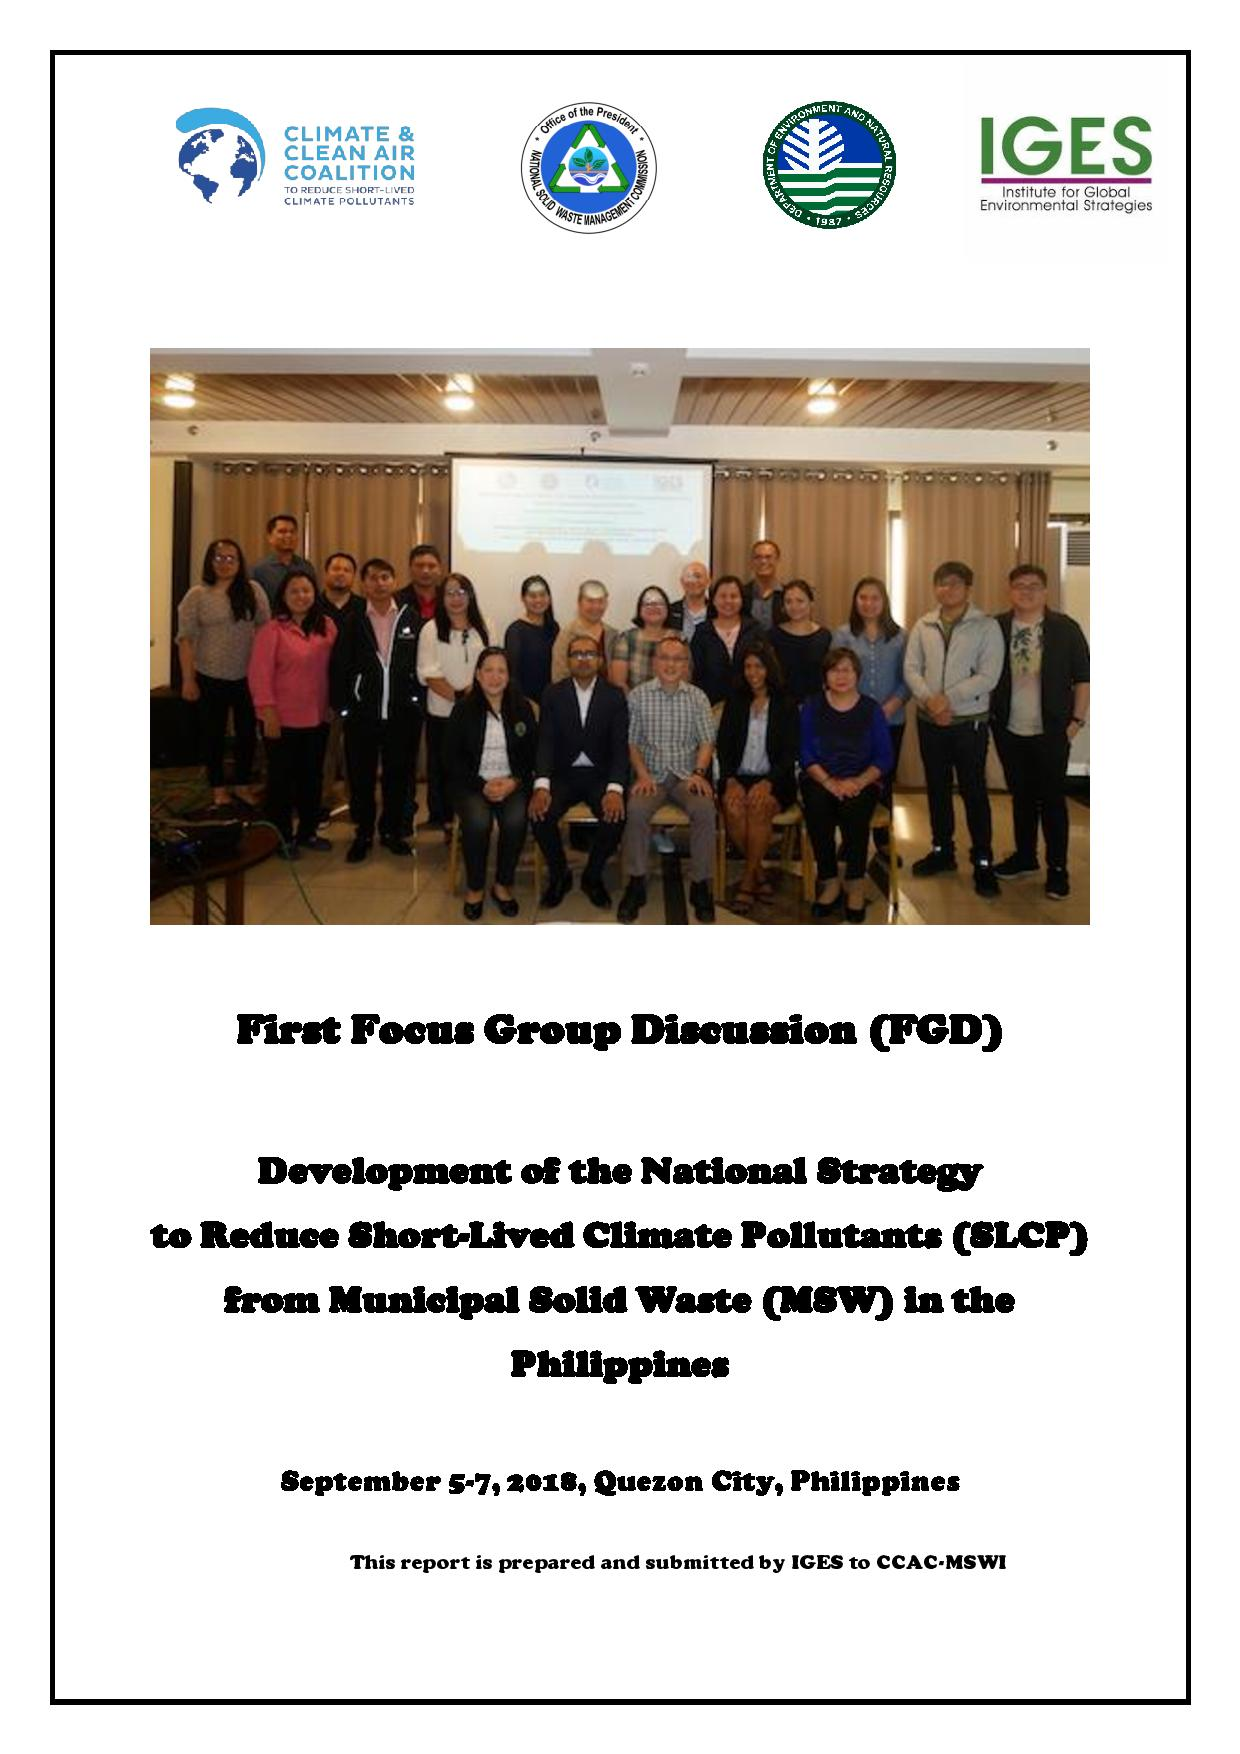 First Focus Group Discussion (FGD)